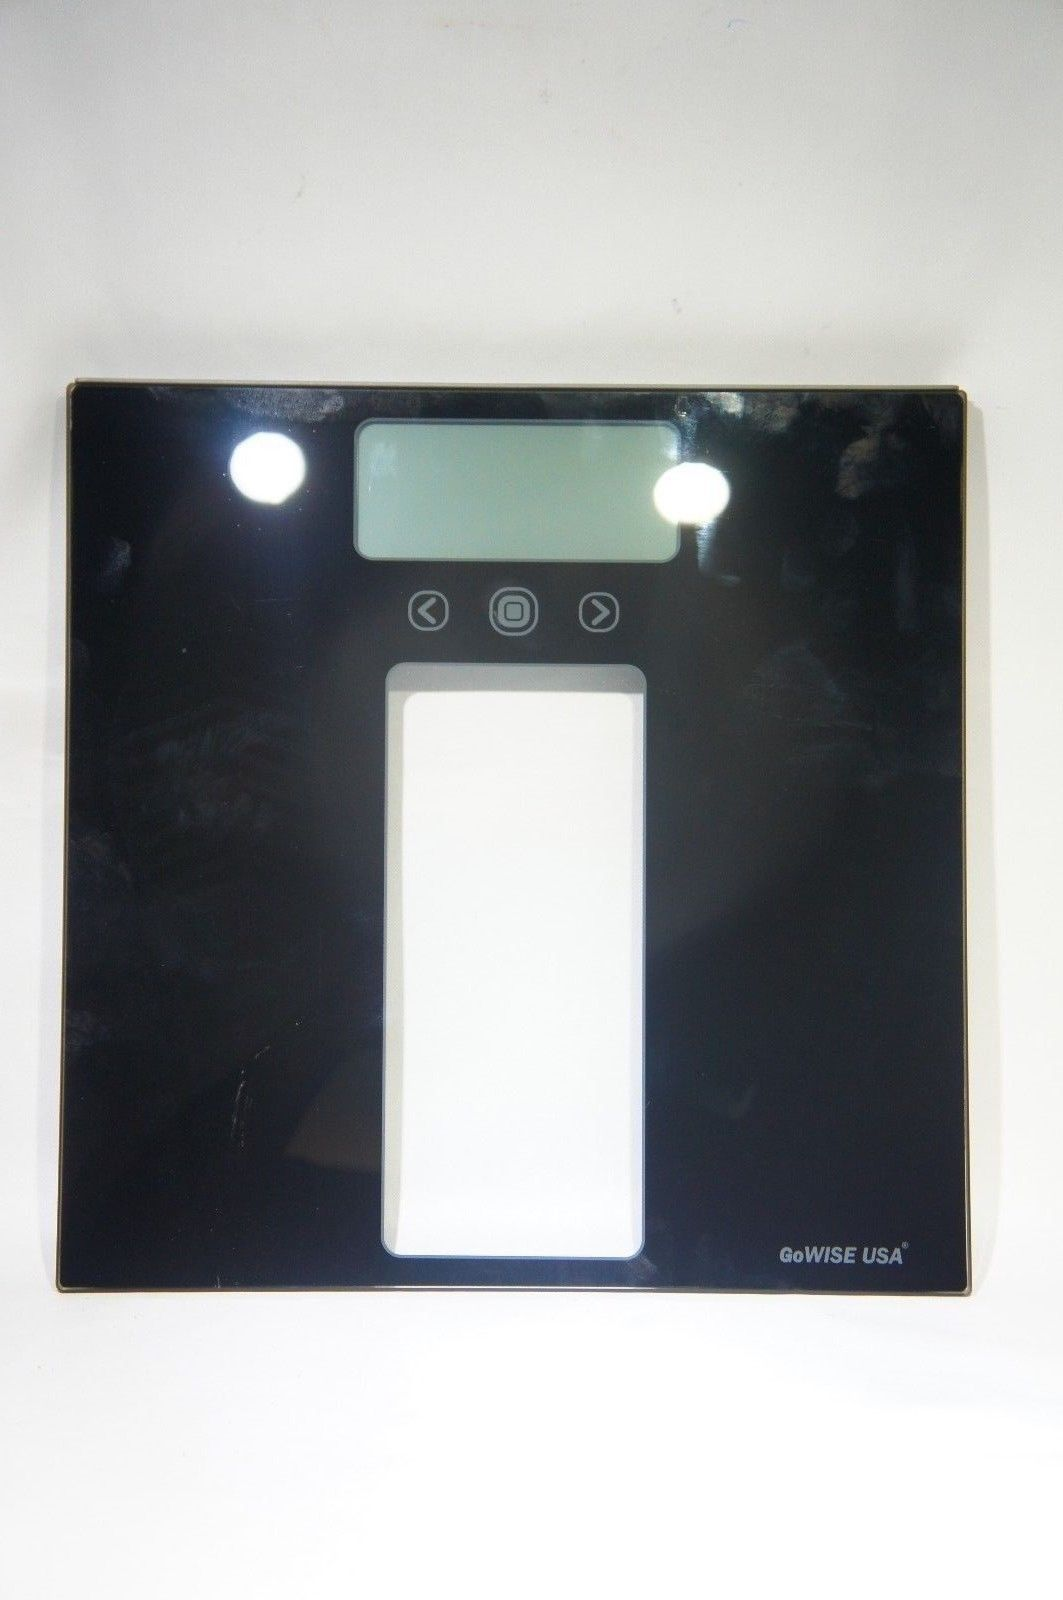 GoWISE GW22039 USA Body Mass Index Scale with Three Color LCD Indicator